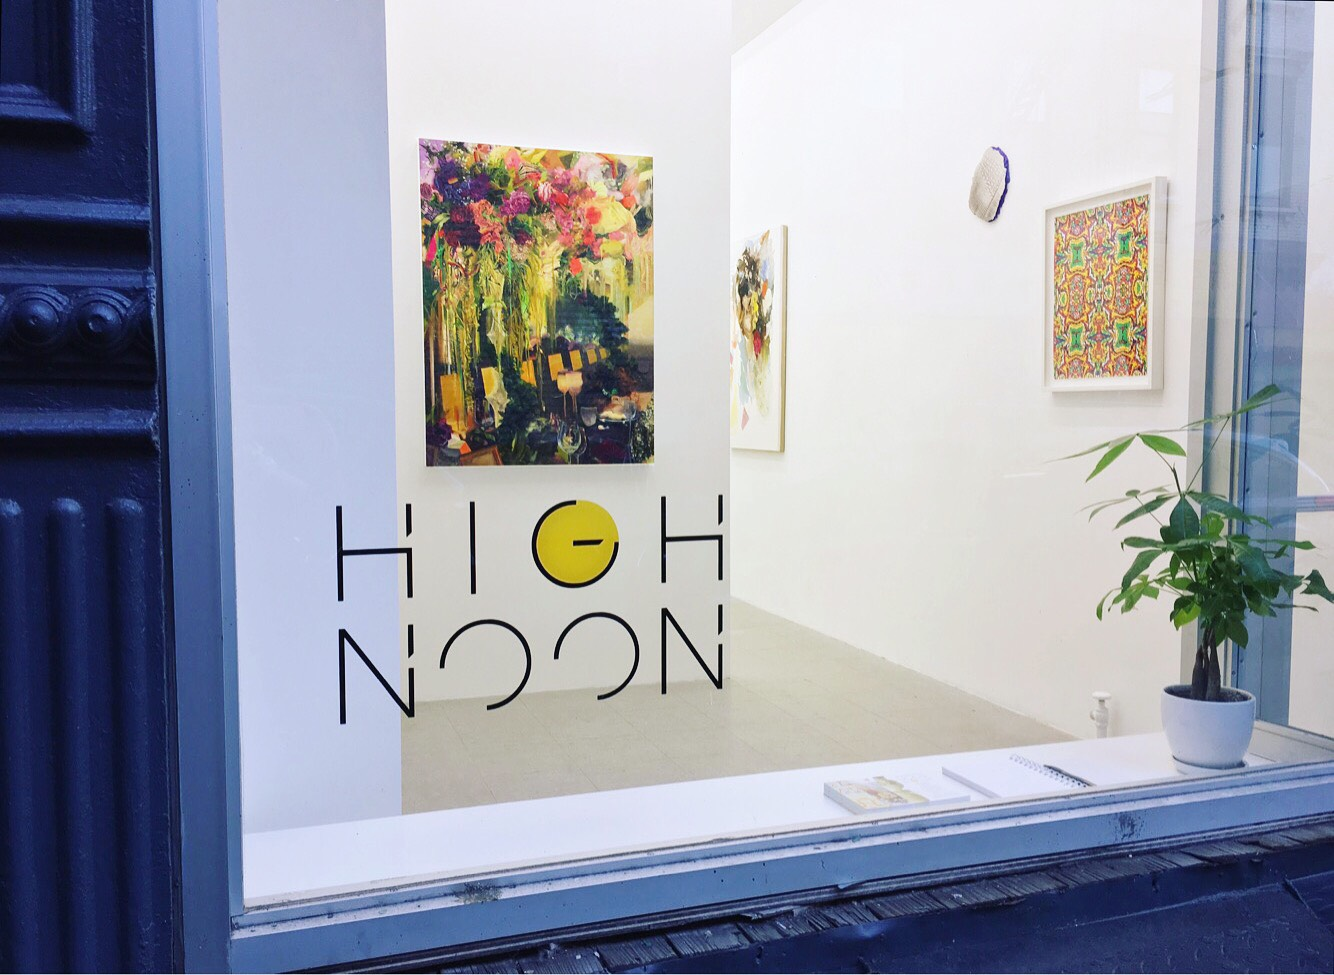 https://hyperallergic.com/420436/9-new-galleries-that-opened-in-new-york-city-in-2017/